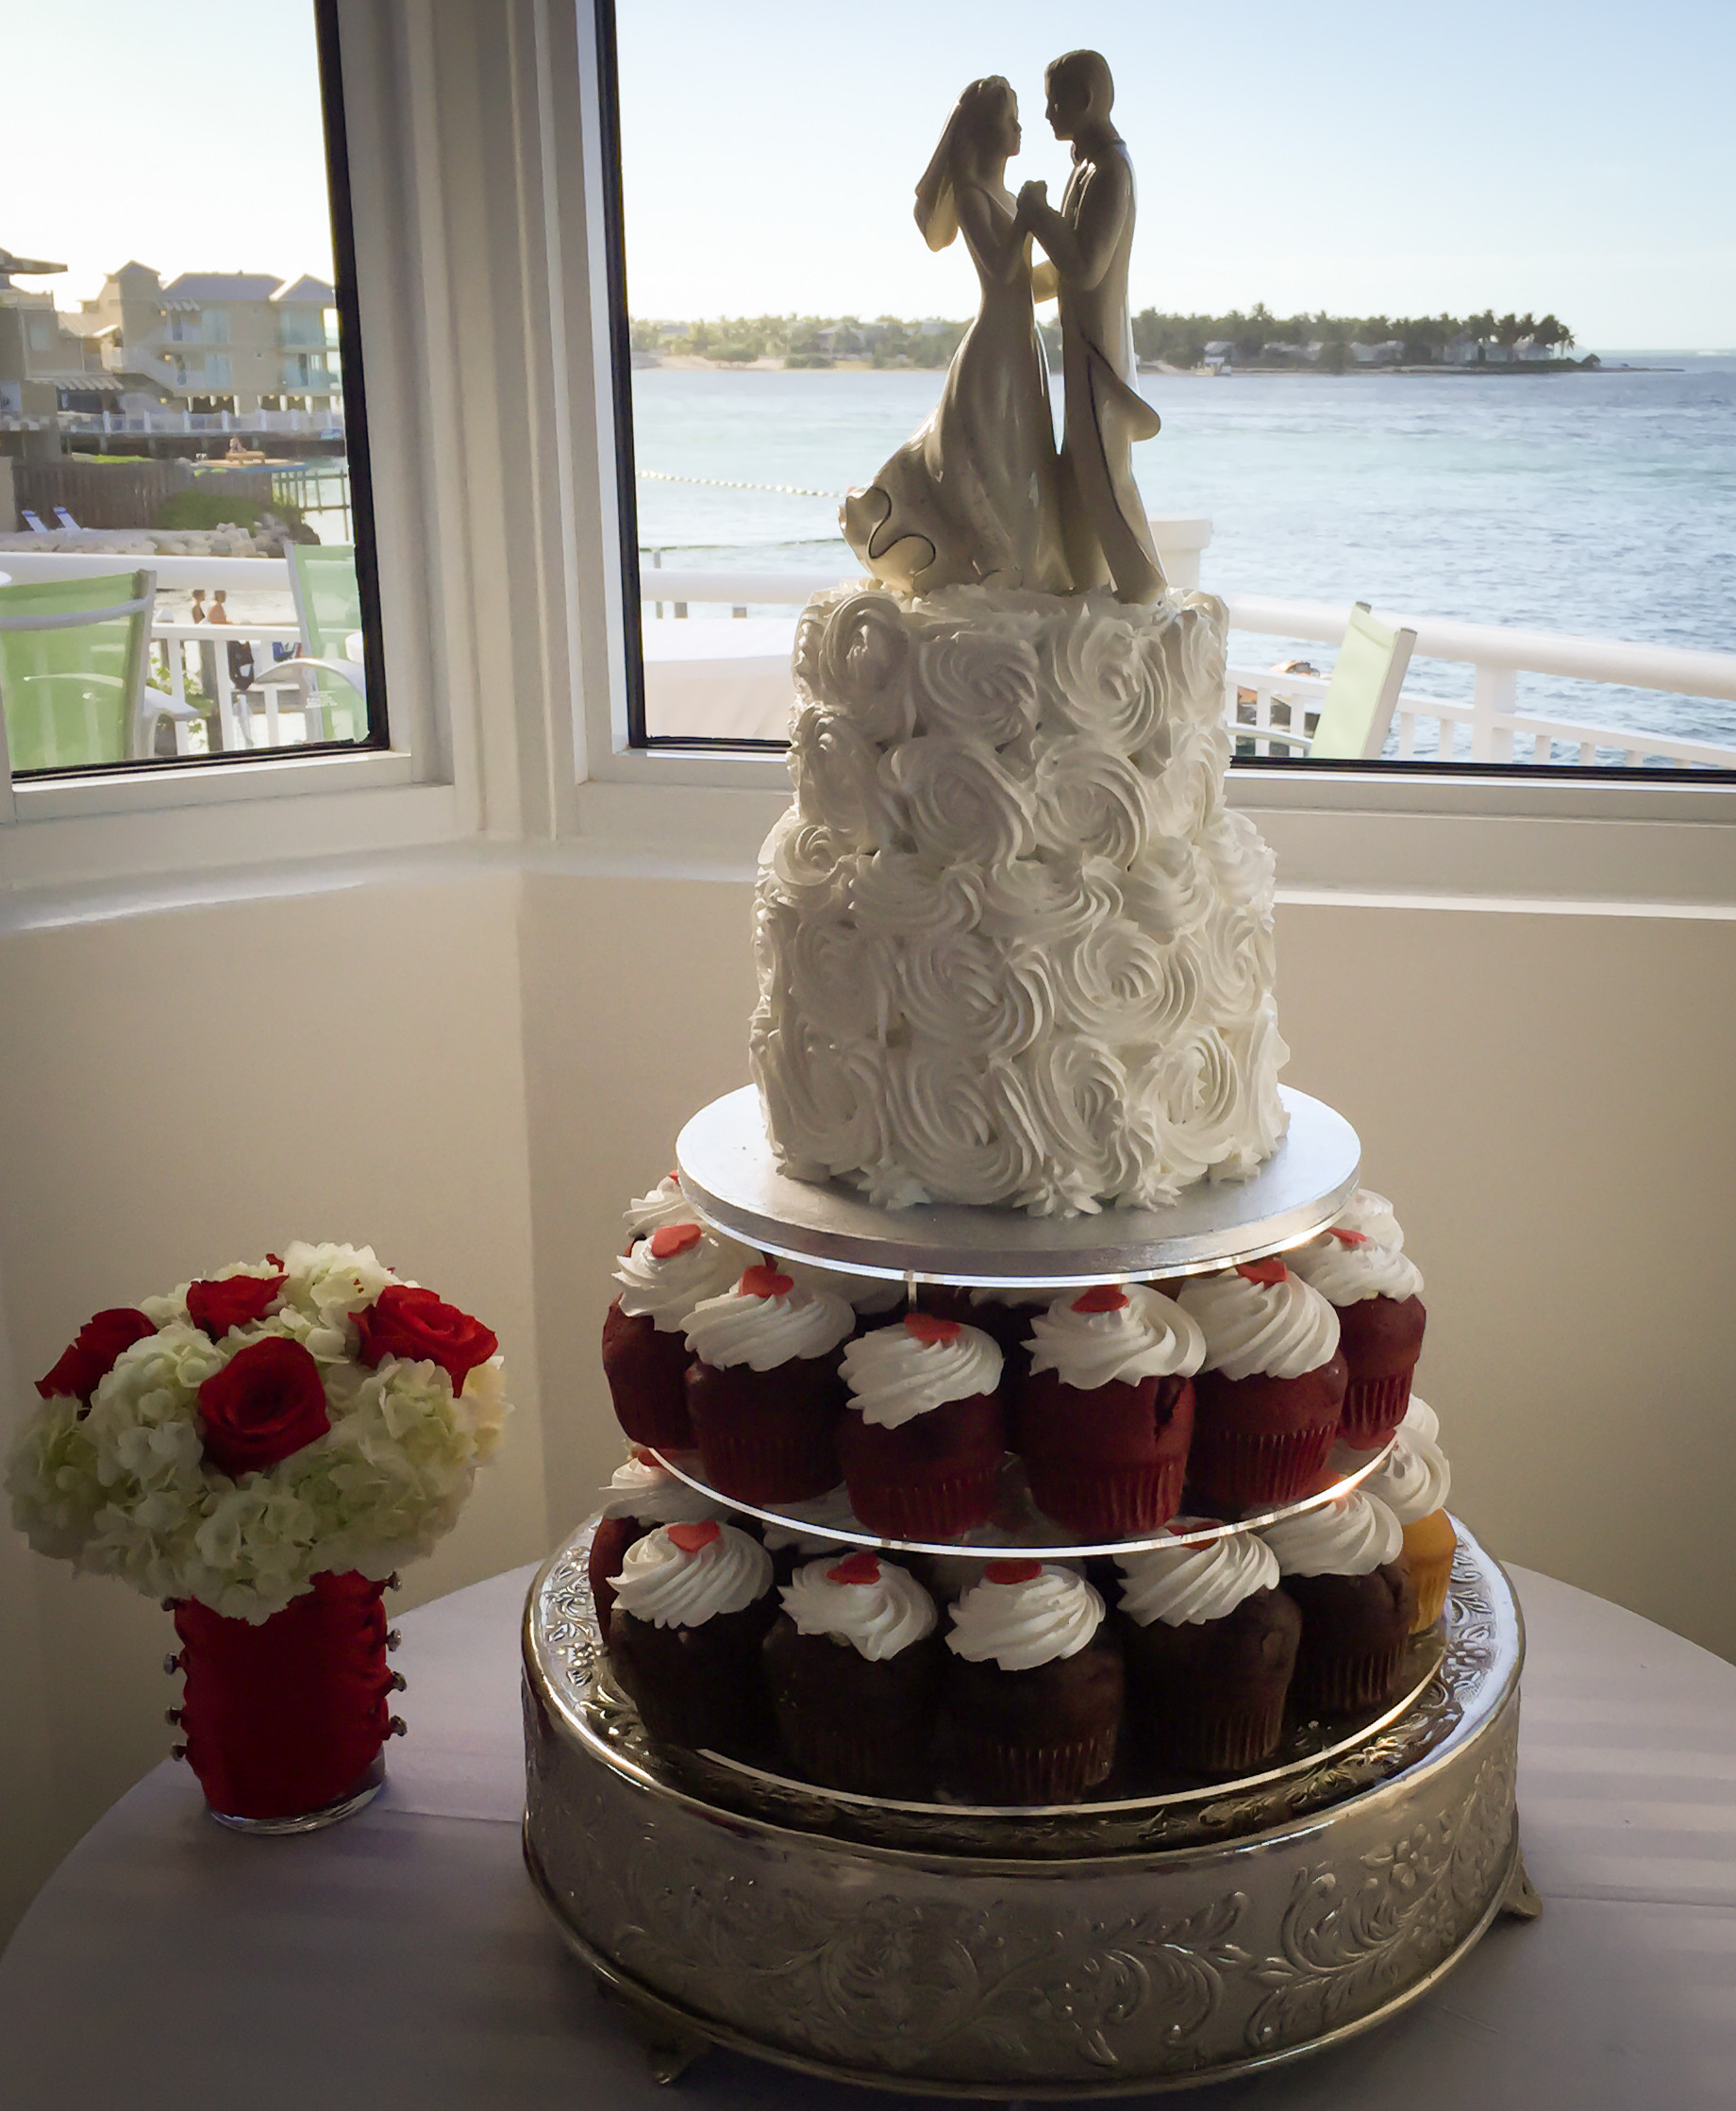 Key West Wedding Cakes  Amazing Cakes and Creations – Key West Cakes and Specialty